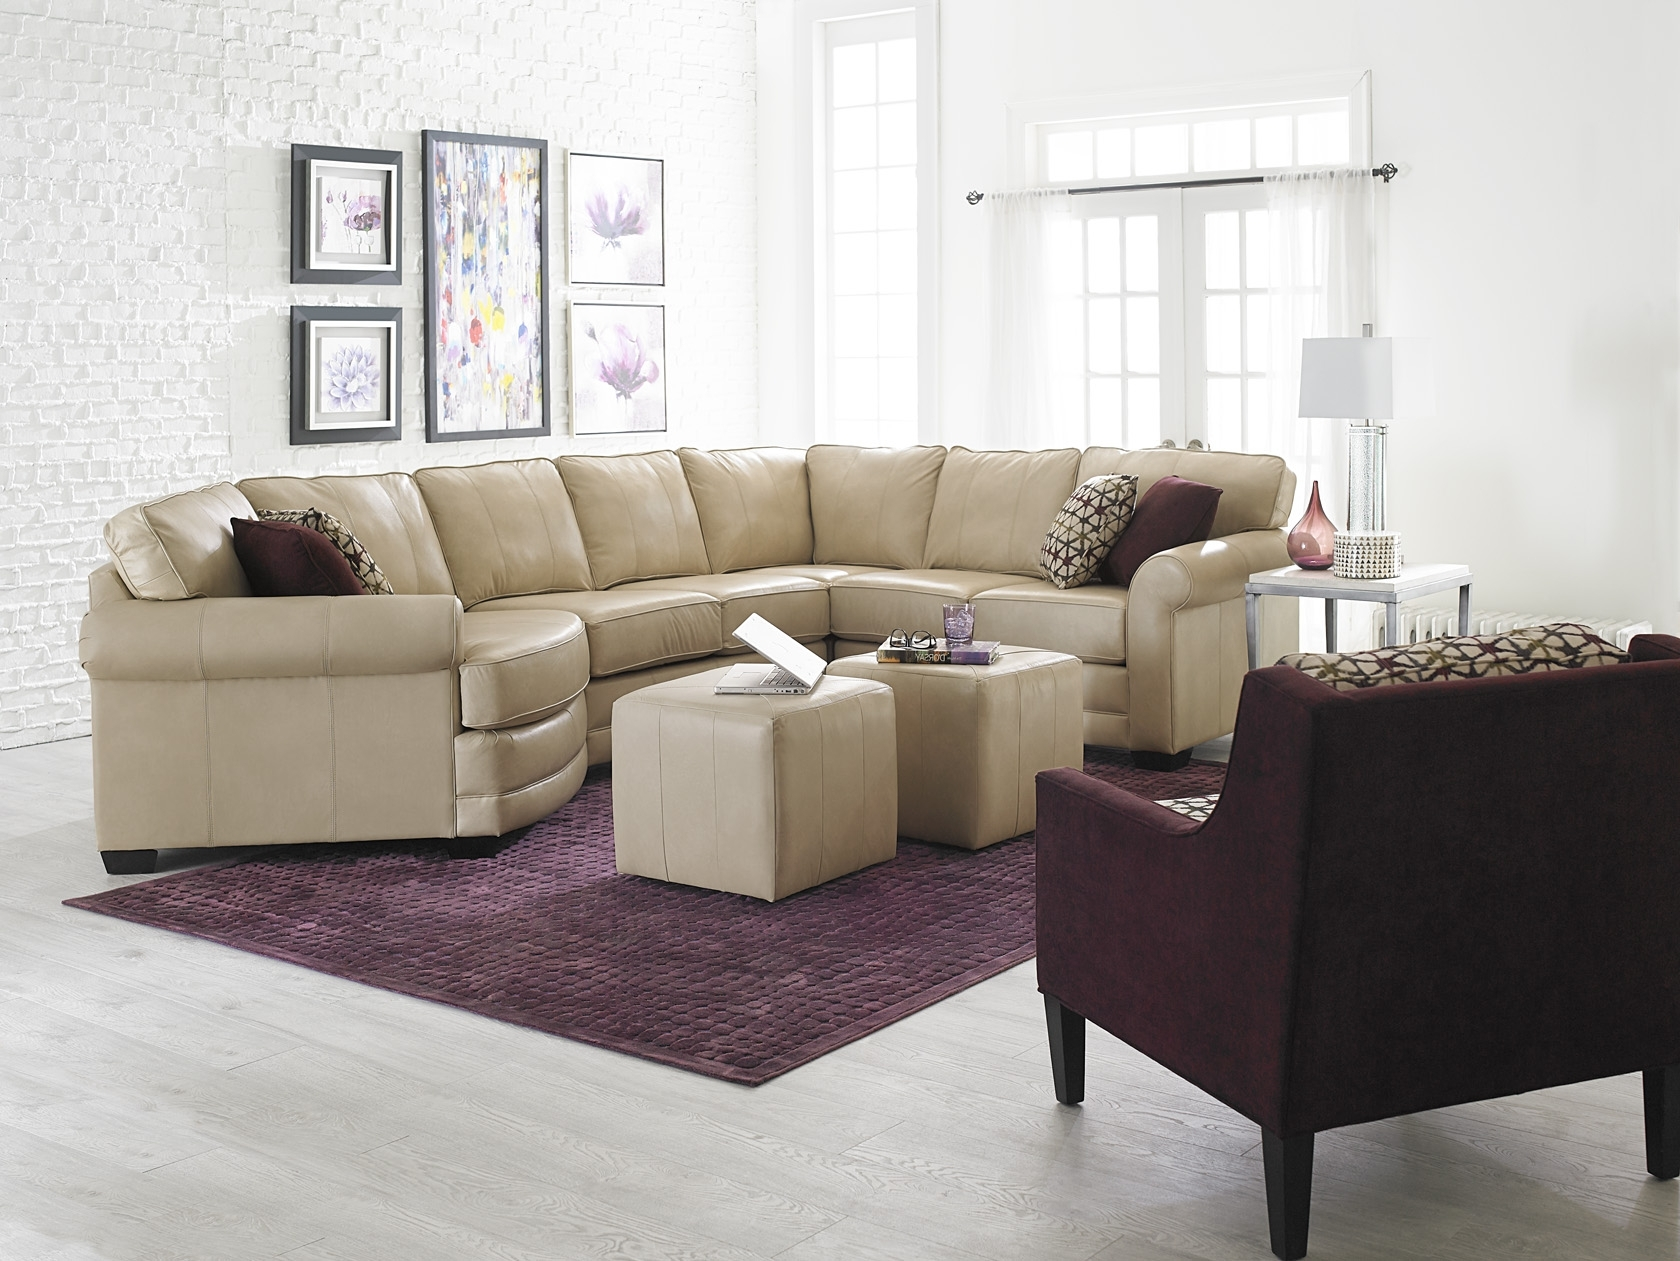 England Furniture Leather Sectional With Cuddler Seat (View 6 of 20)